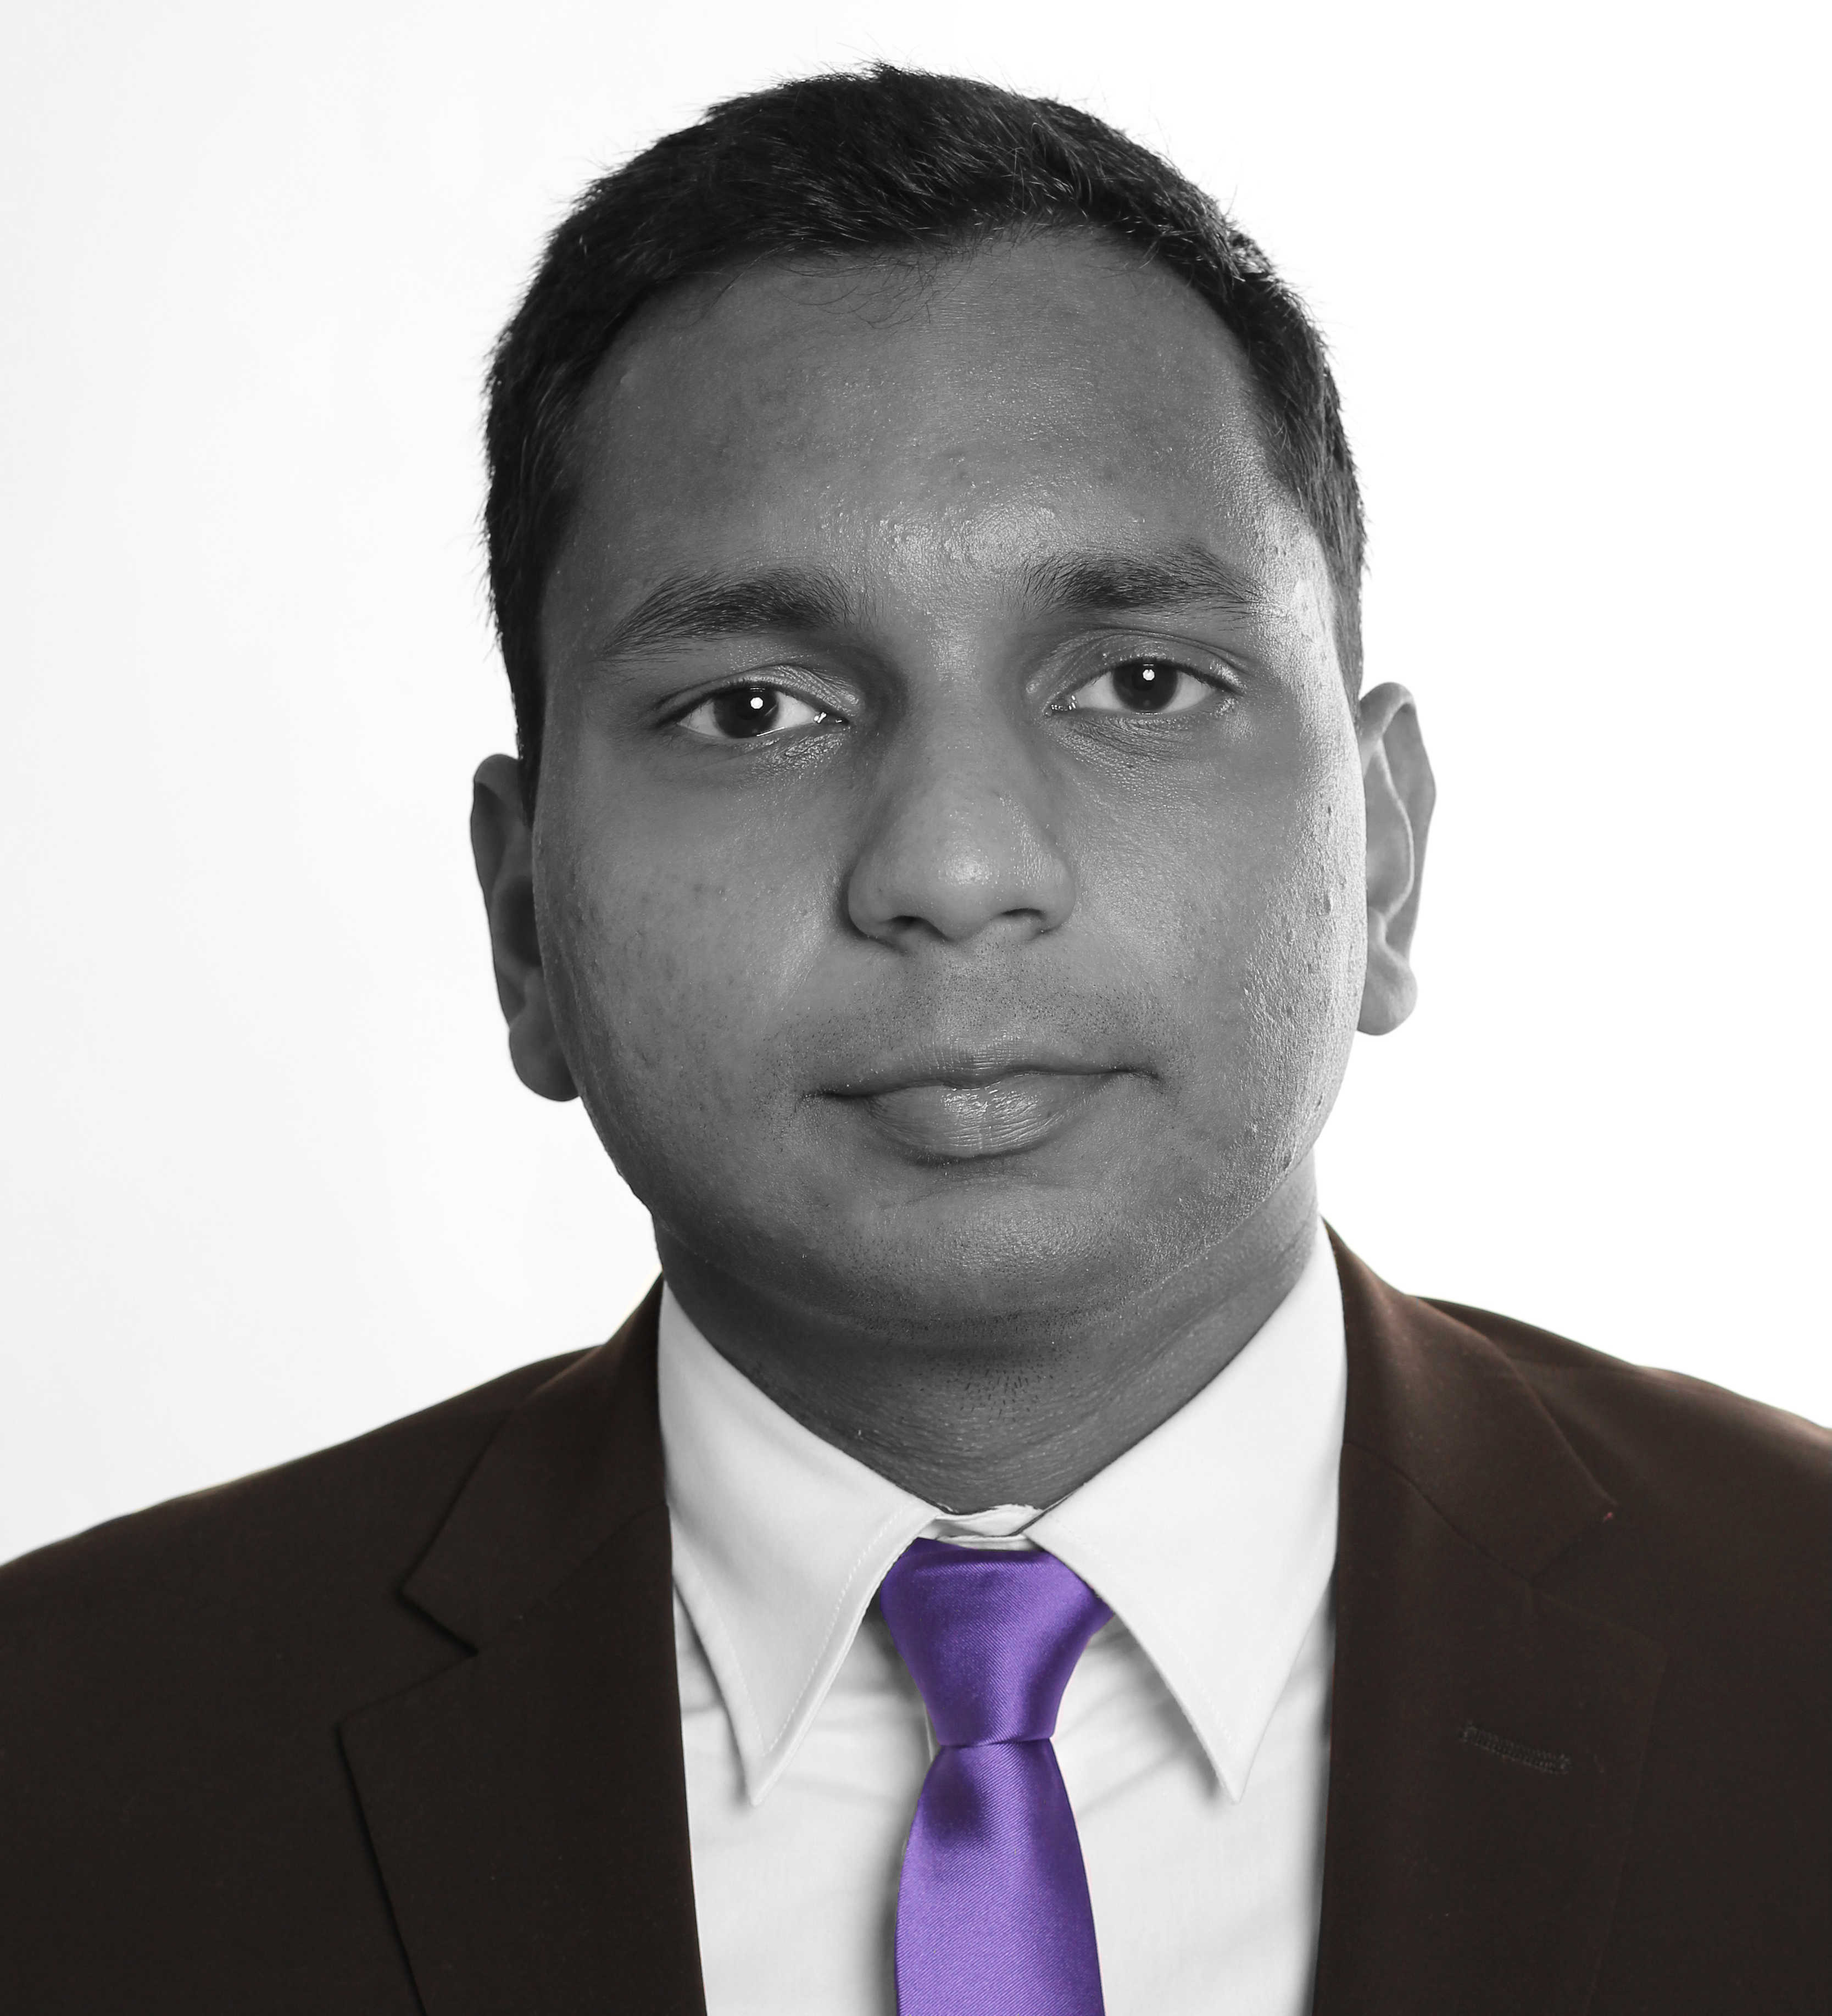 Veenu Aishwarya, co-founder and CEO of AUM LifeTech